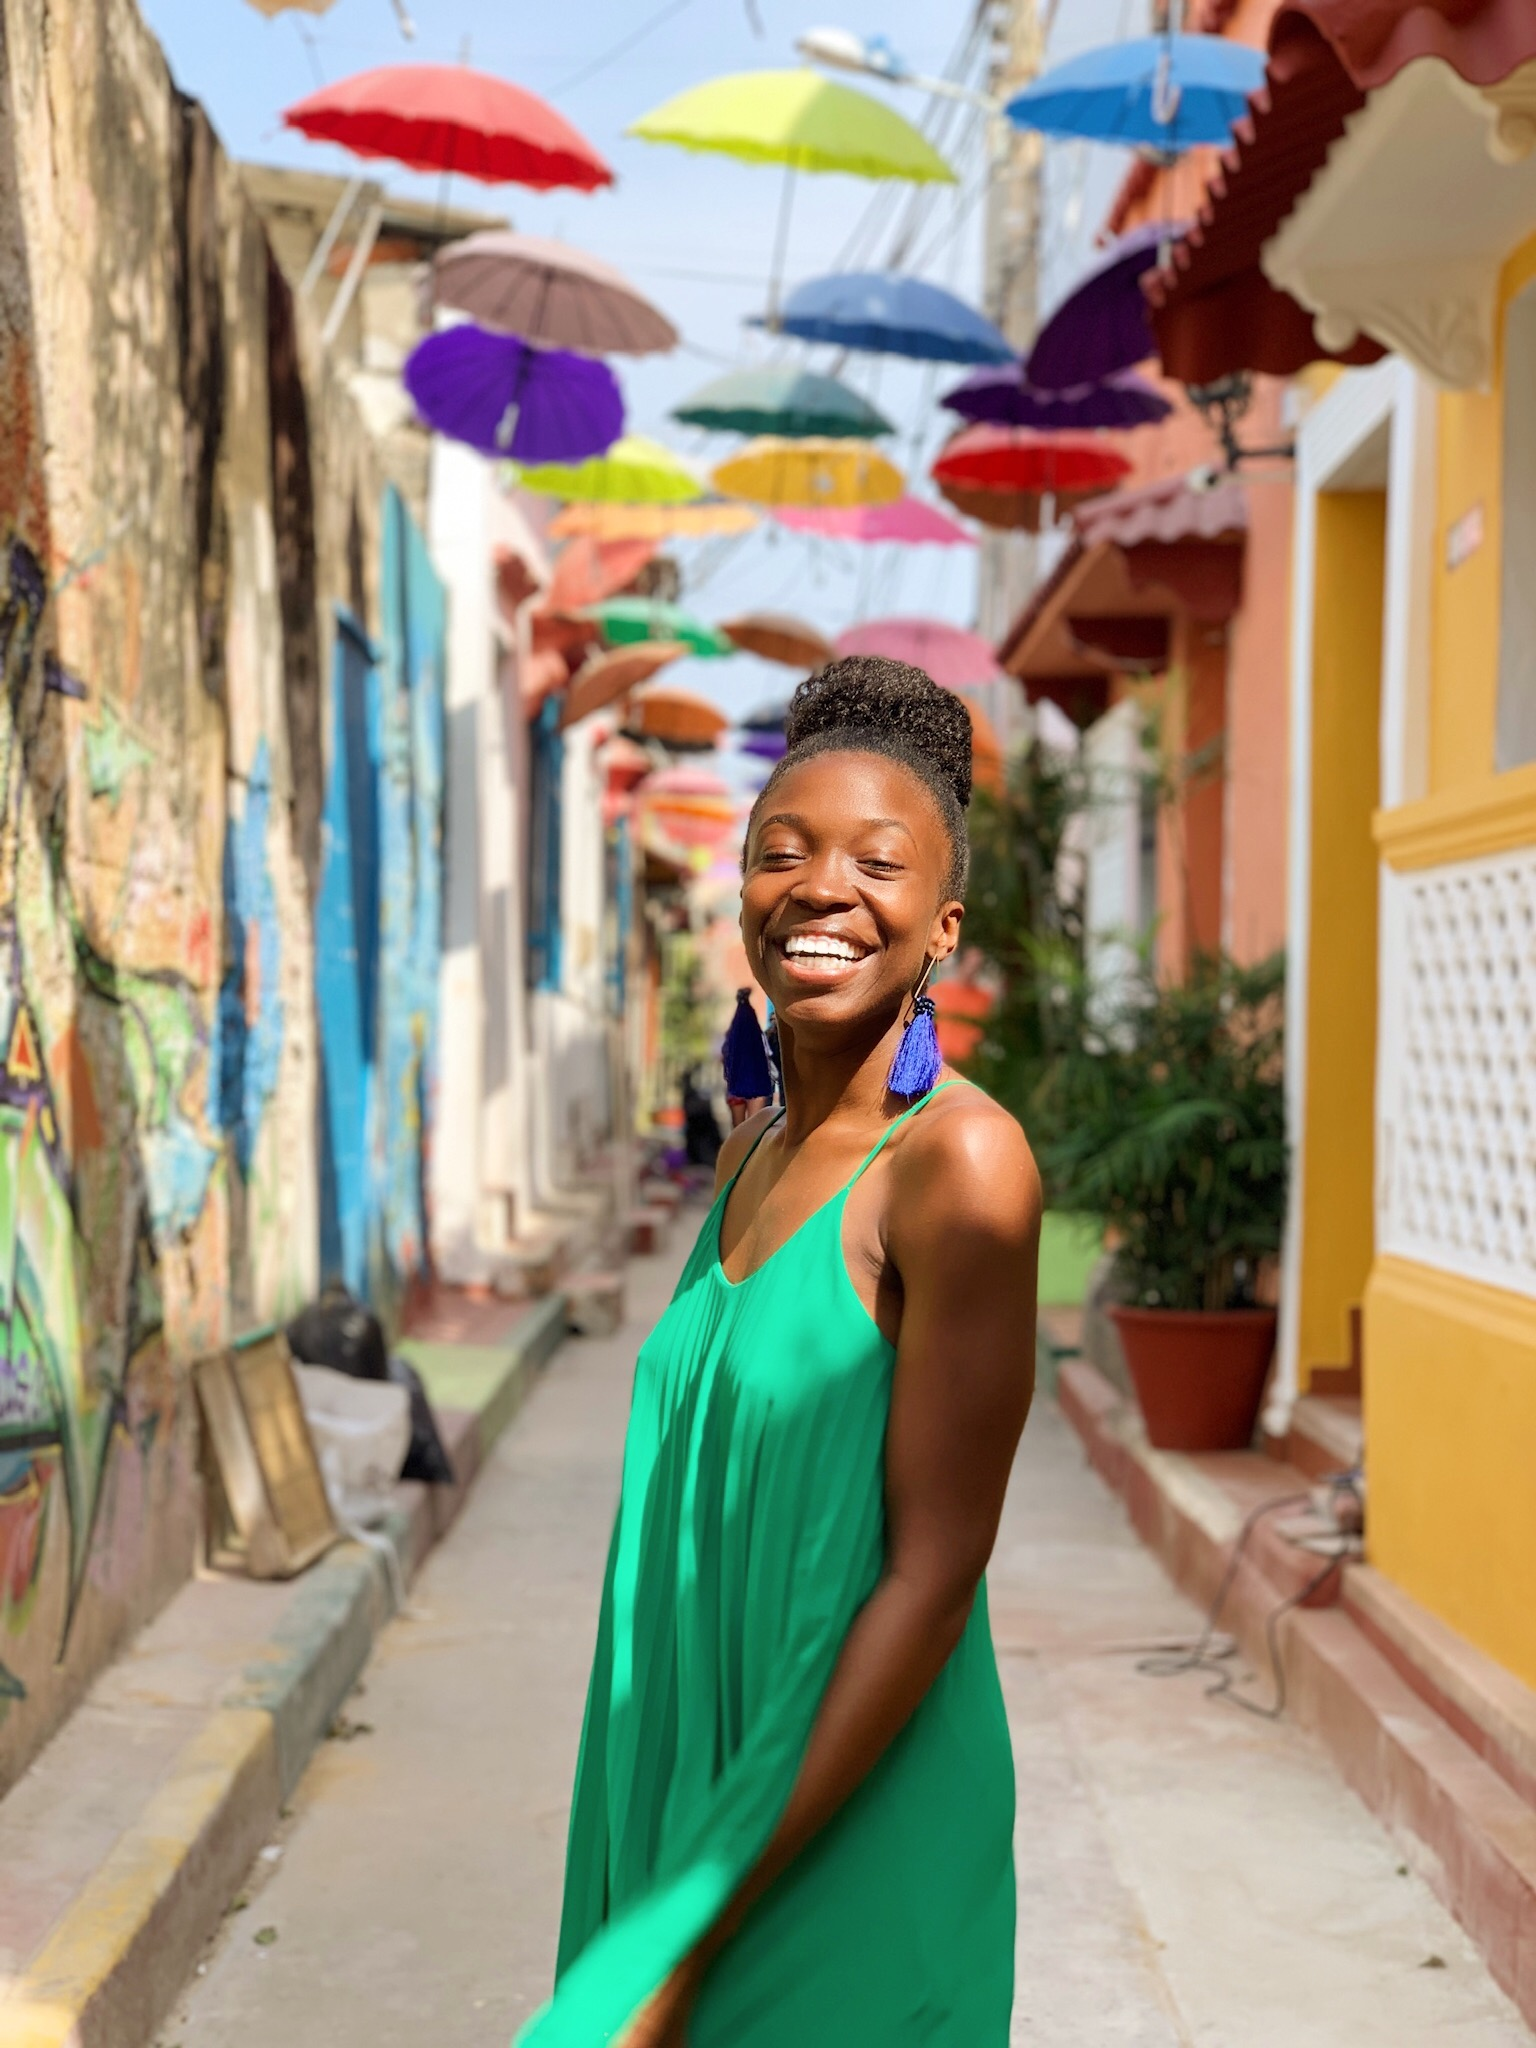 Boone is an avid traveler, and is pictured here in Getsemani, Colombia.